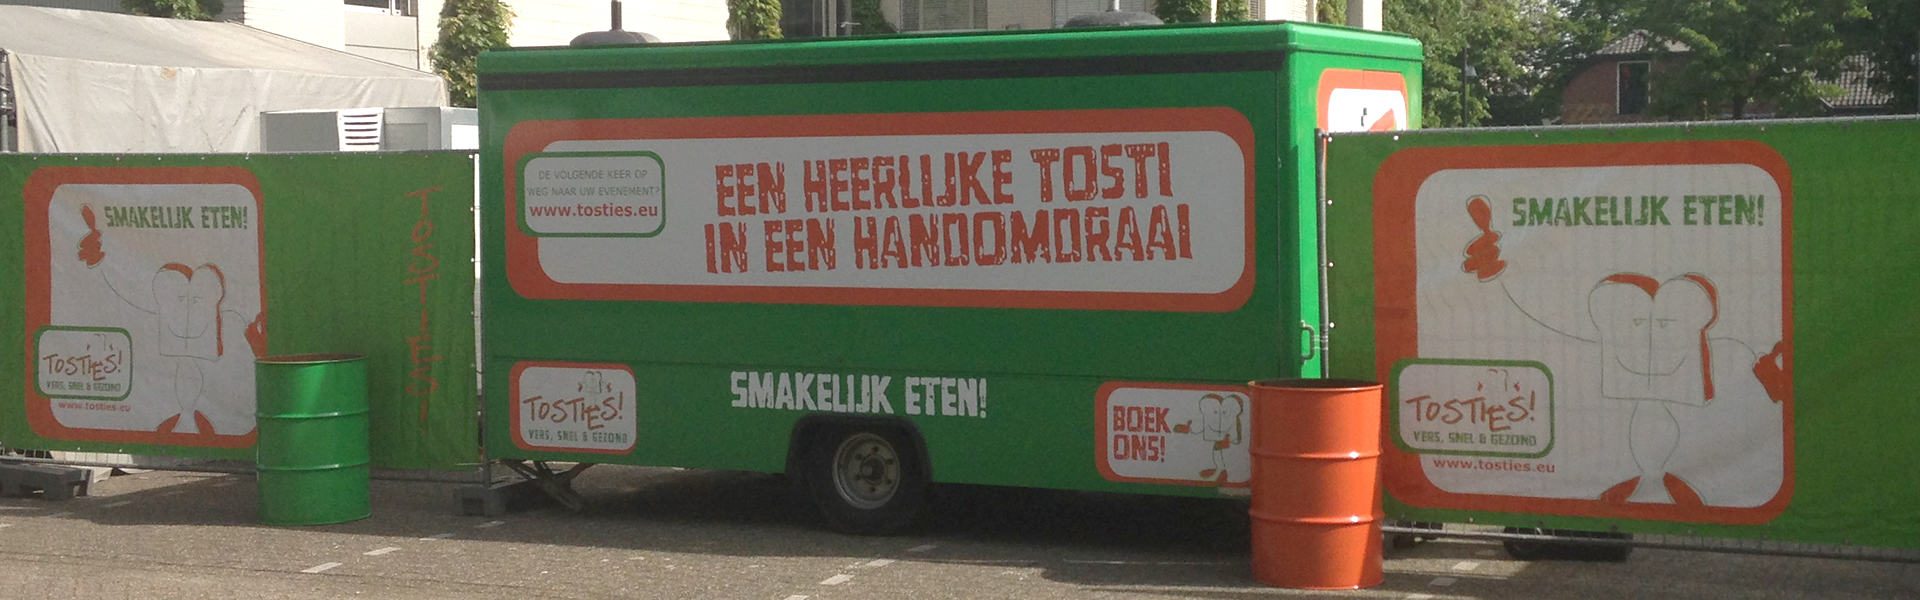 Tosties in een handomdraai, tosti